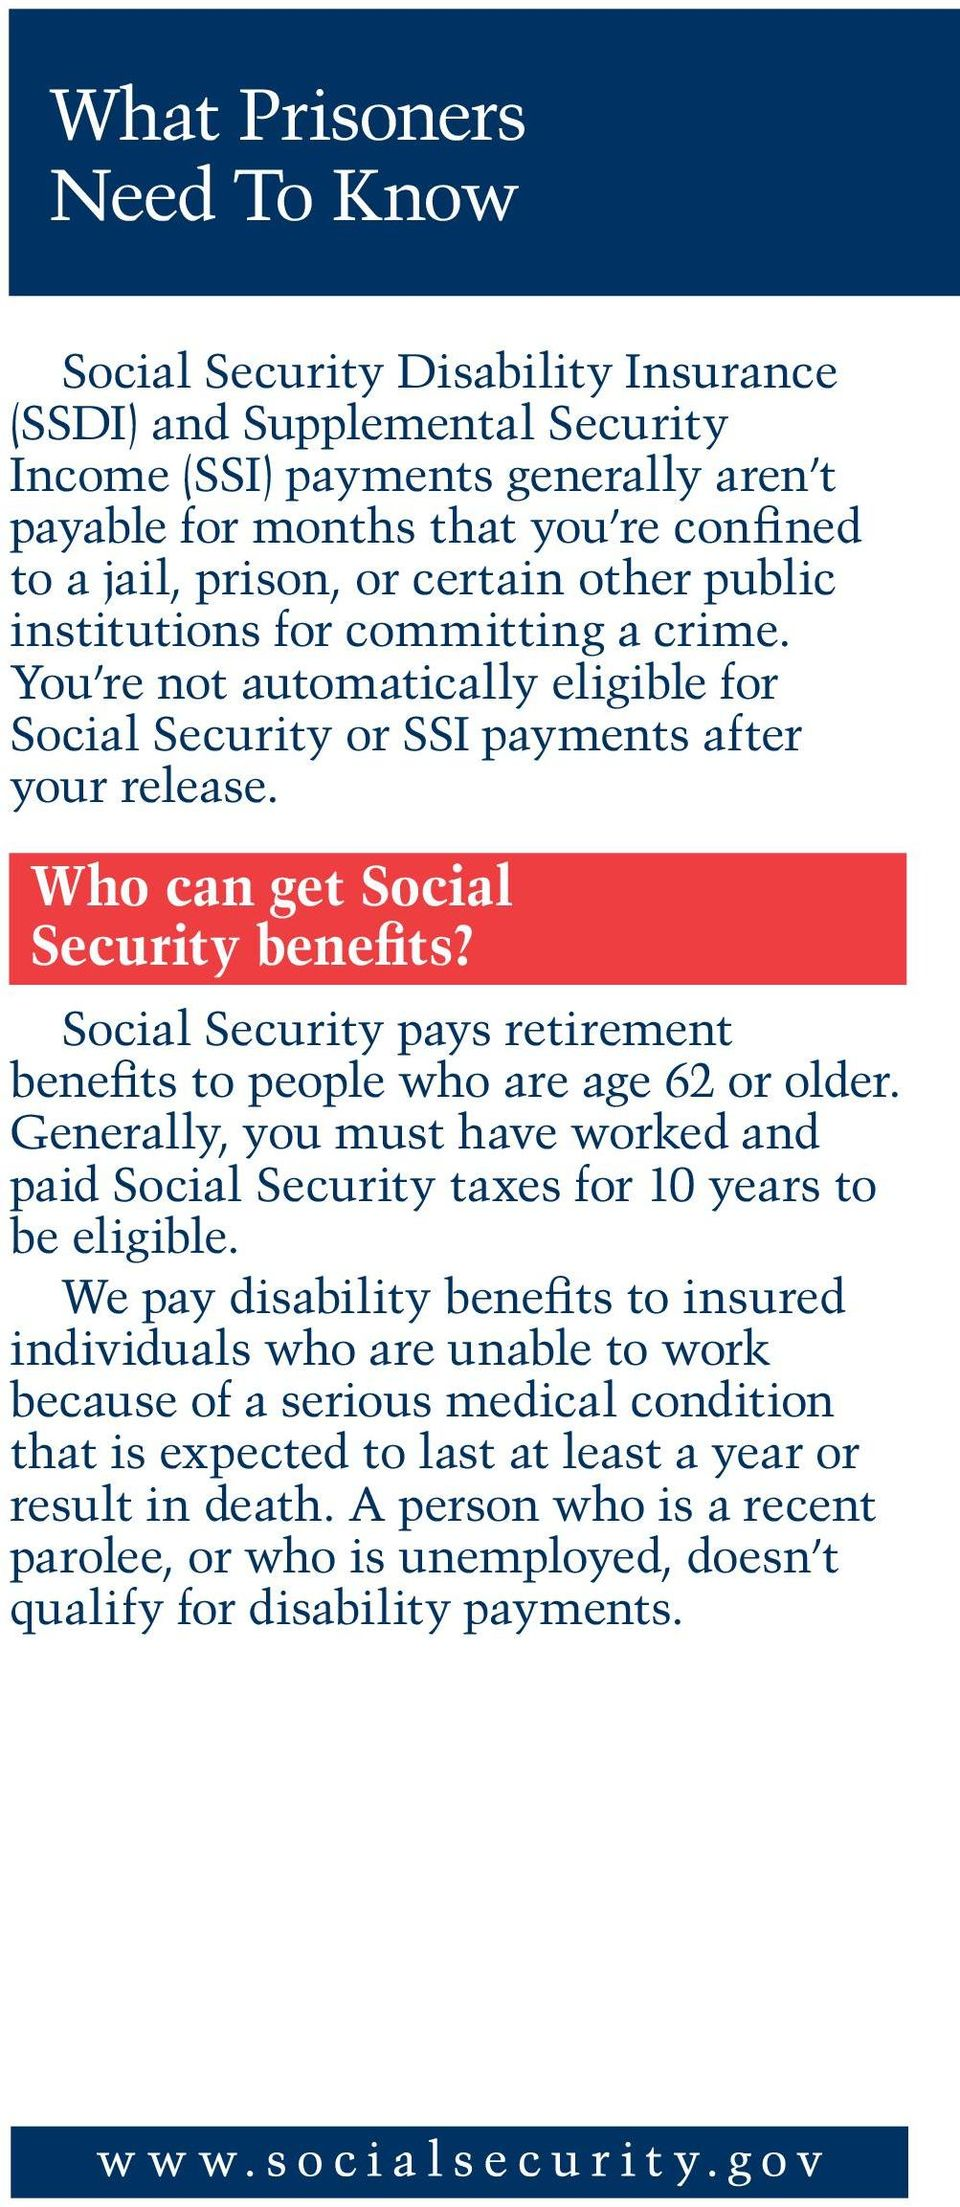 Social Security pays retirement benefits to people who are age 62 or older. Generally, you must have worked and paid Social Security taxes for 10 years to be eligible.